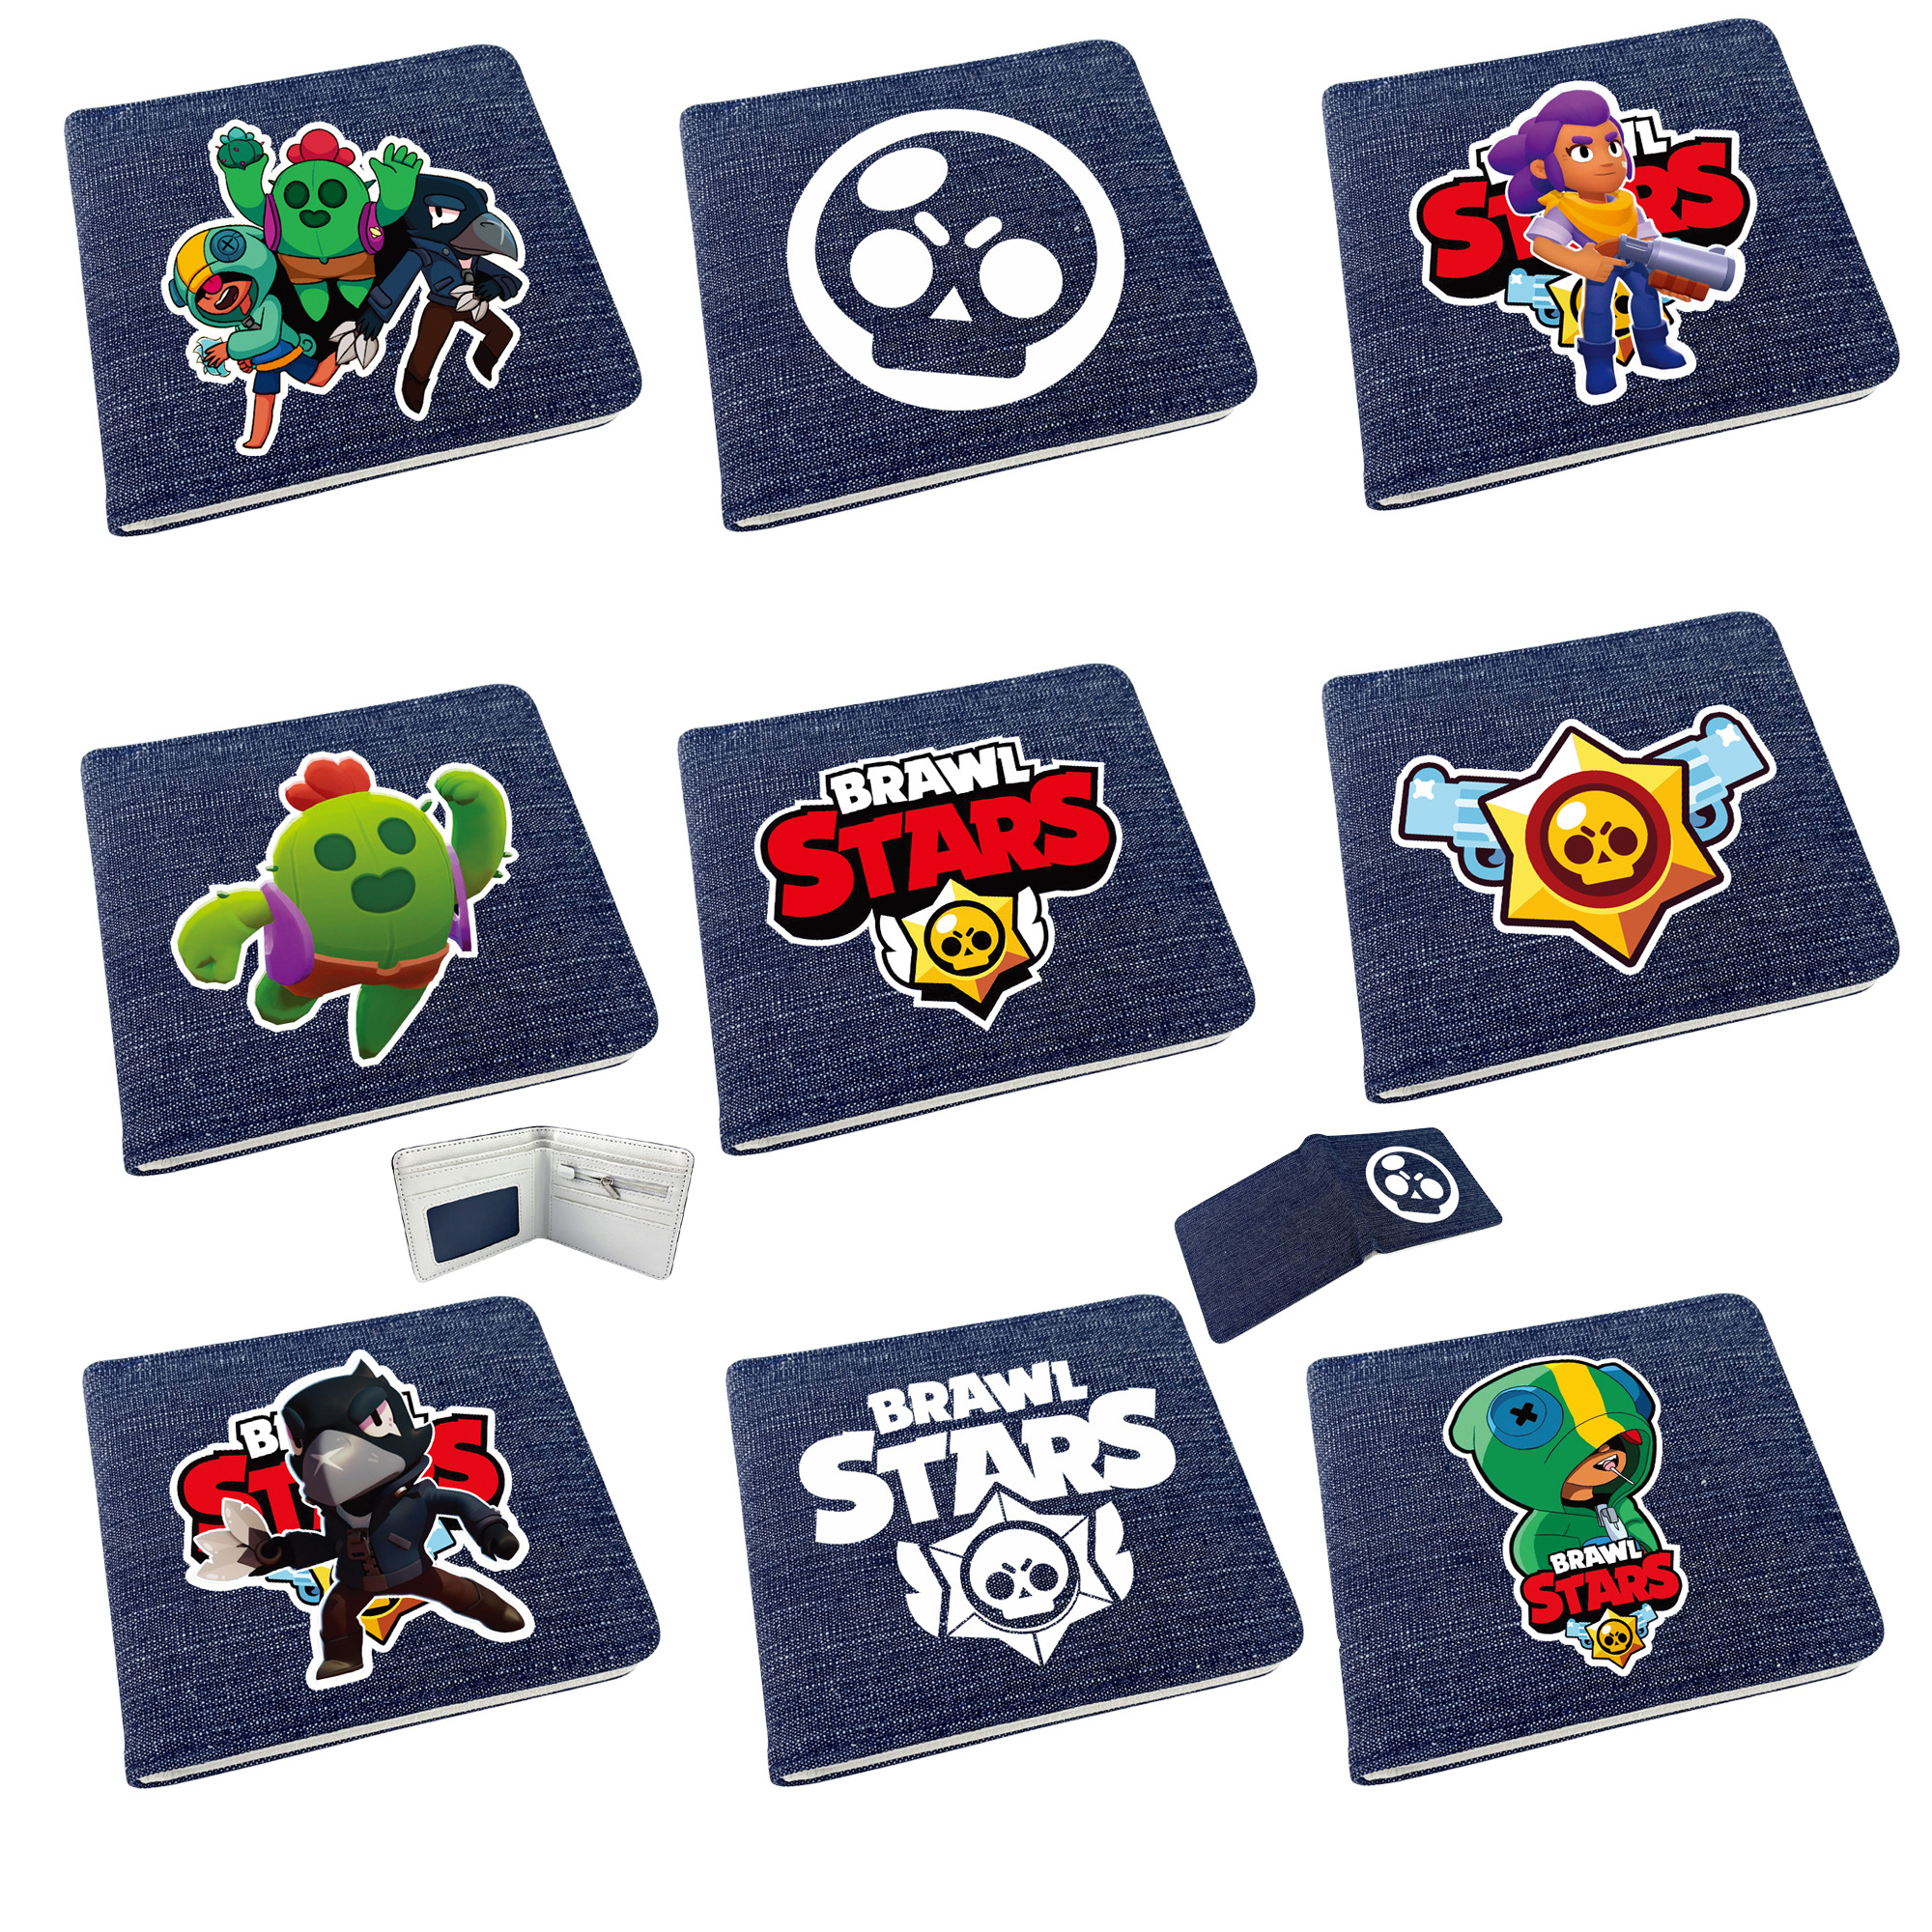 Brawl Star Games Wallet Cartoon Purse Long Coin Purse Card Holder Money Clutch Wristlet Child Cover Organizer Wallet Card Holder